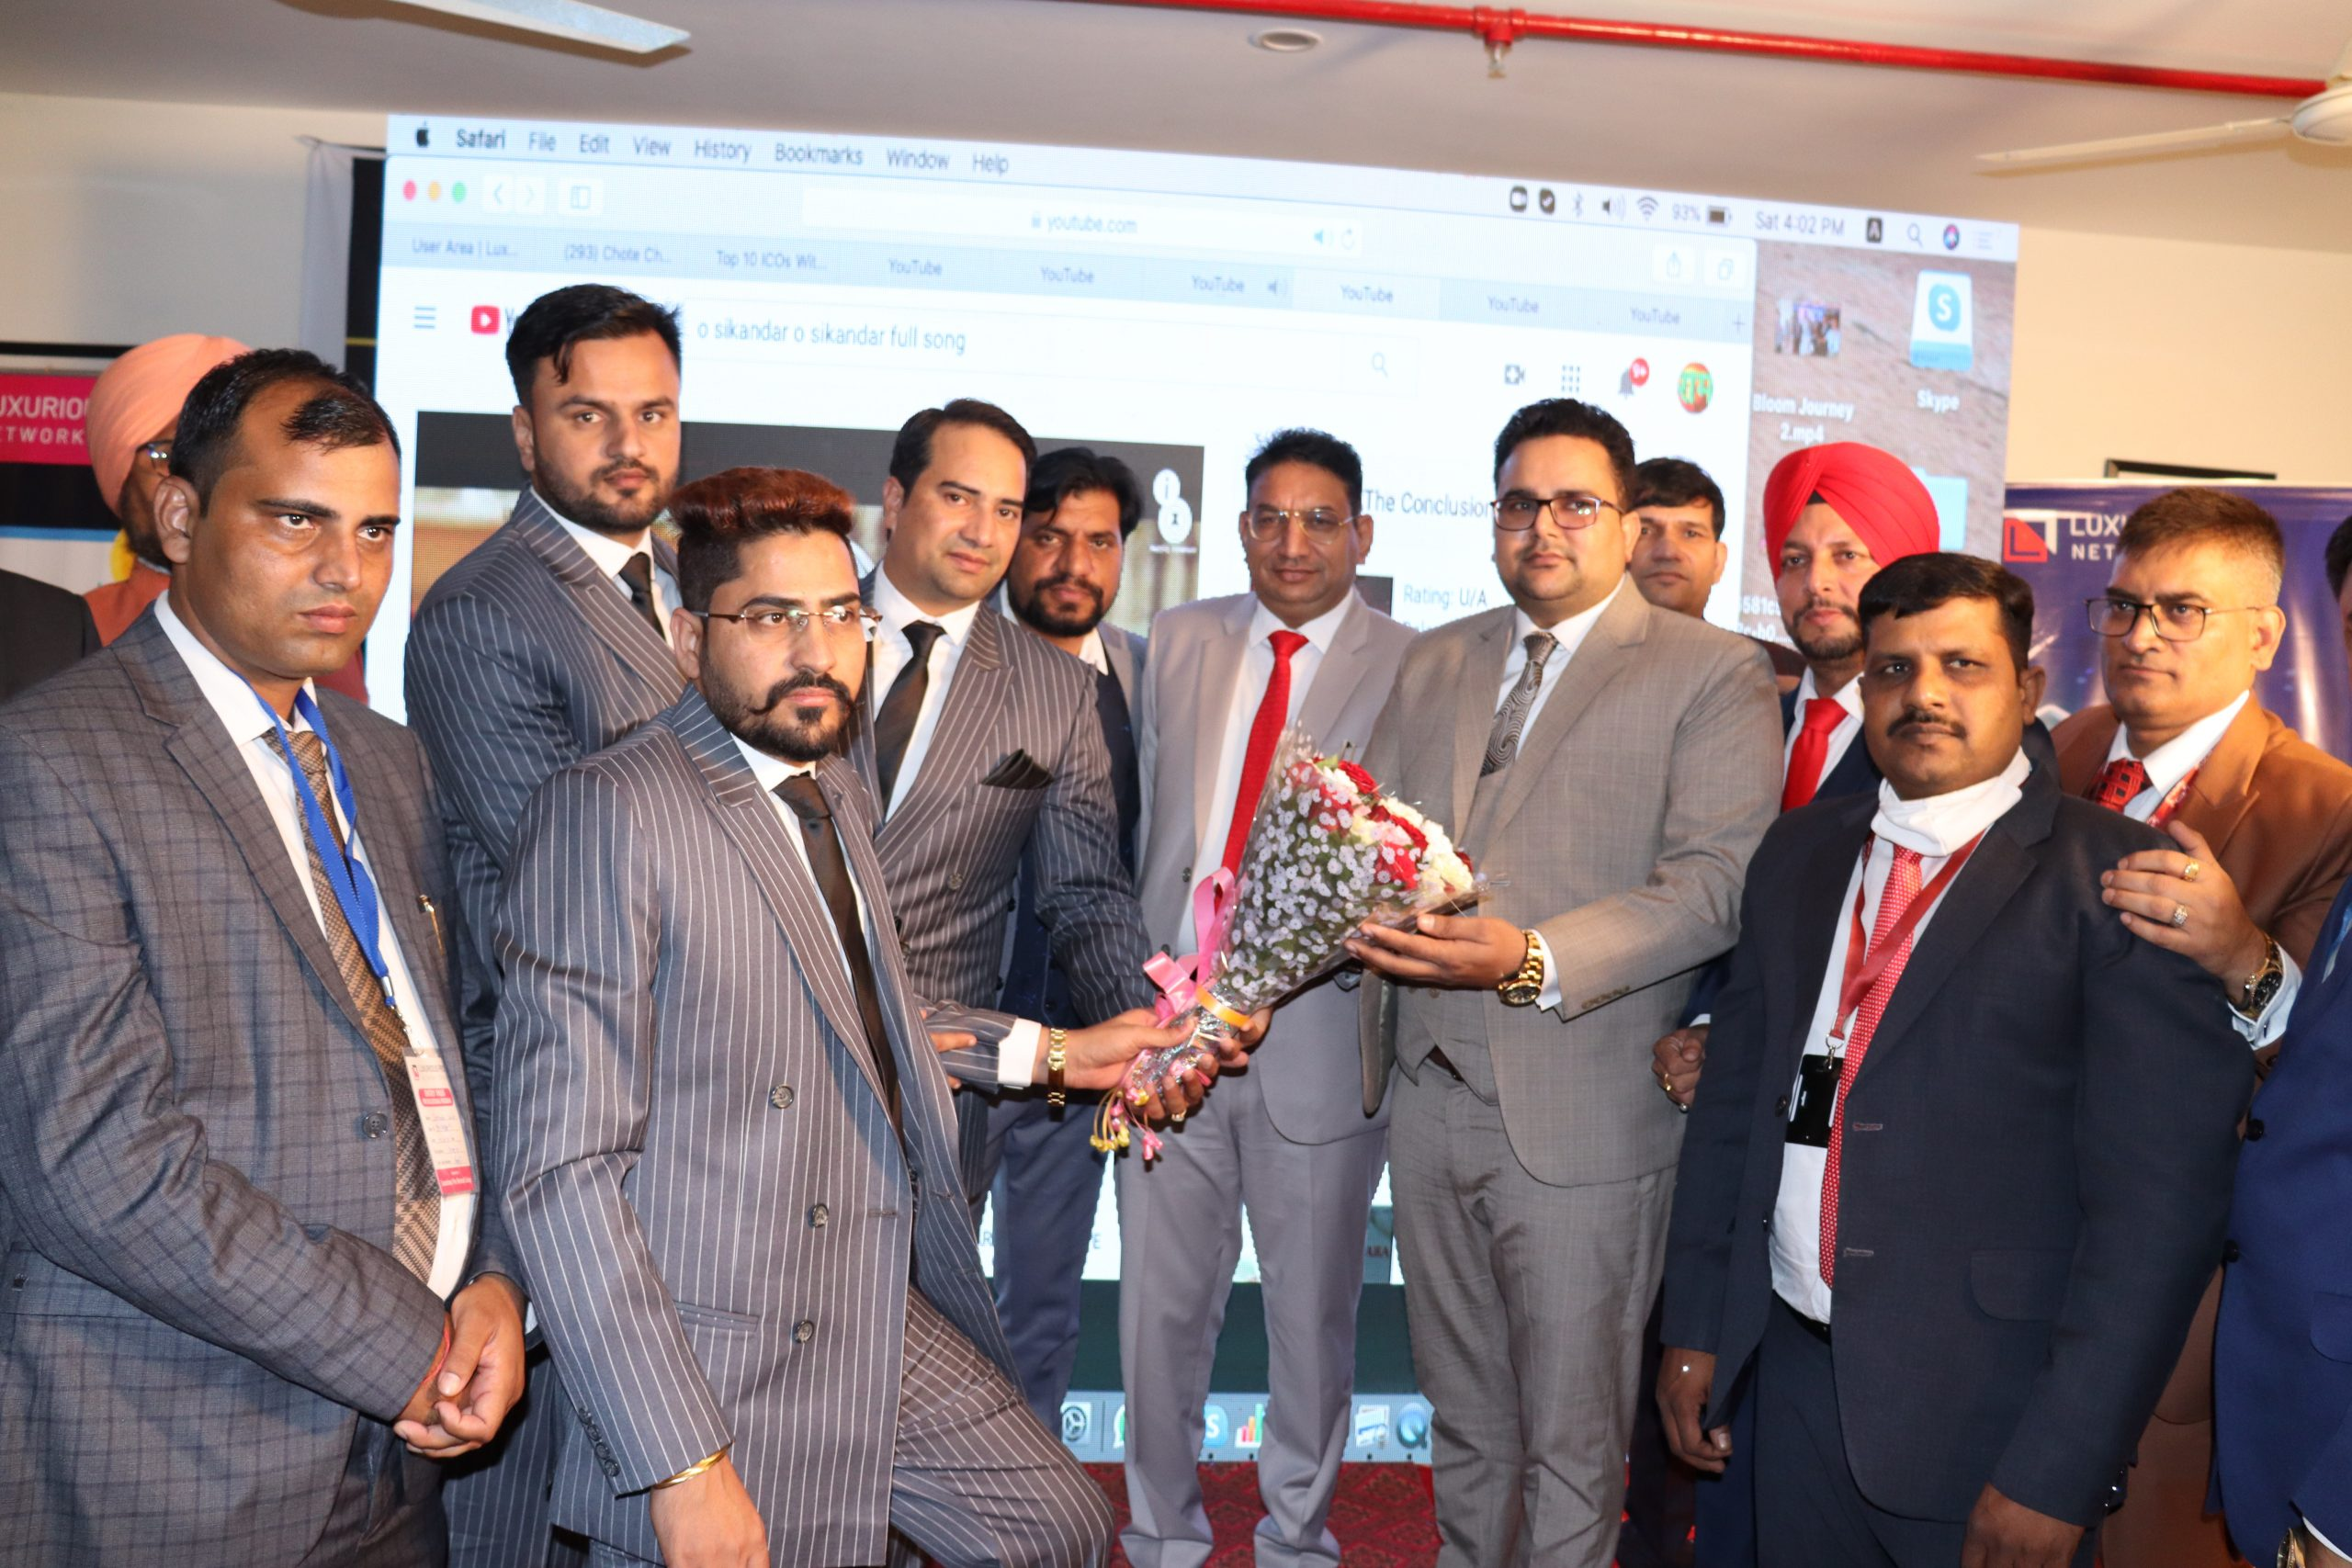 Lpn token event organized in South India